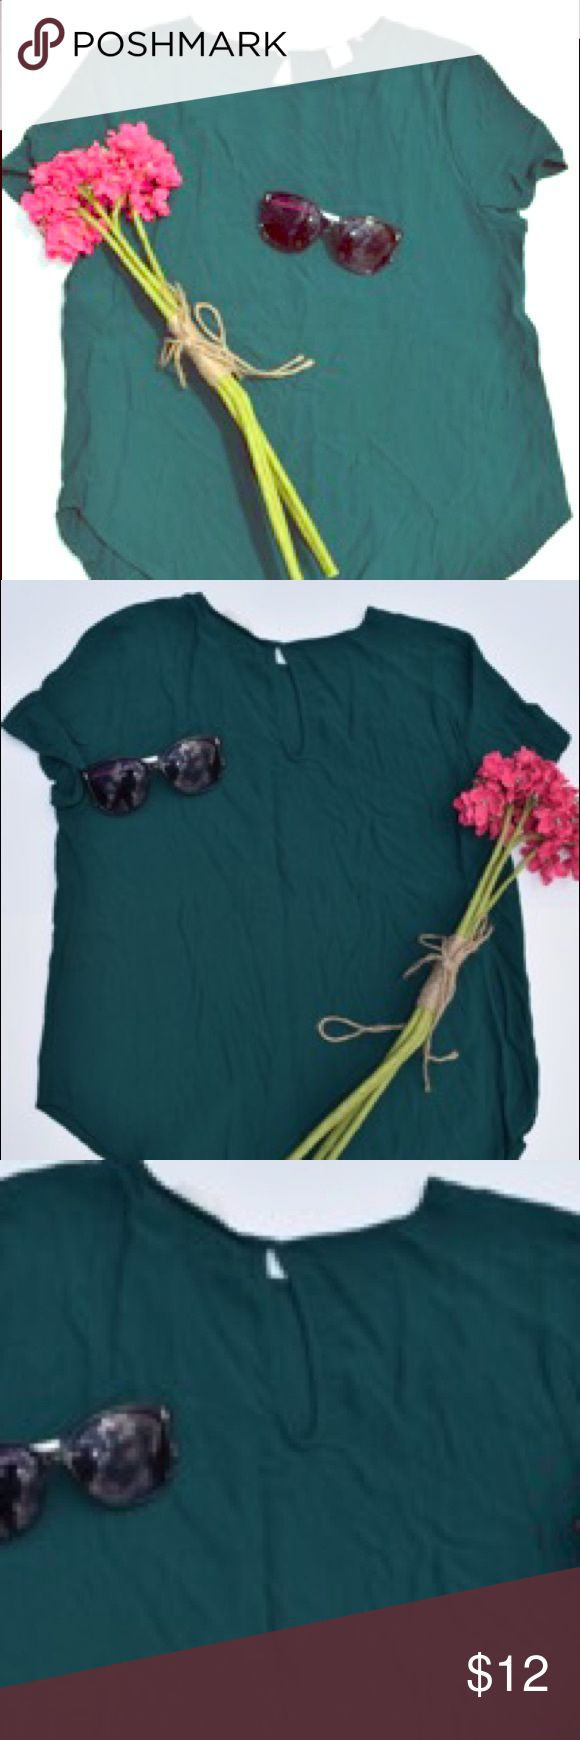 Green H&M TShirt Blouse 👚 Beautiful emerald green colored TShirt Blouse from H&M. Great shirt for year round. Cute peep hole in the back neckline. Great condition. Size 10 but fits like a M H&M Tops